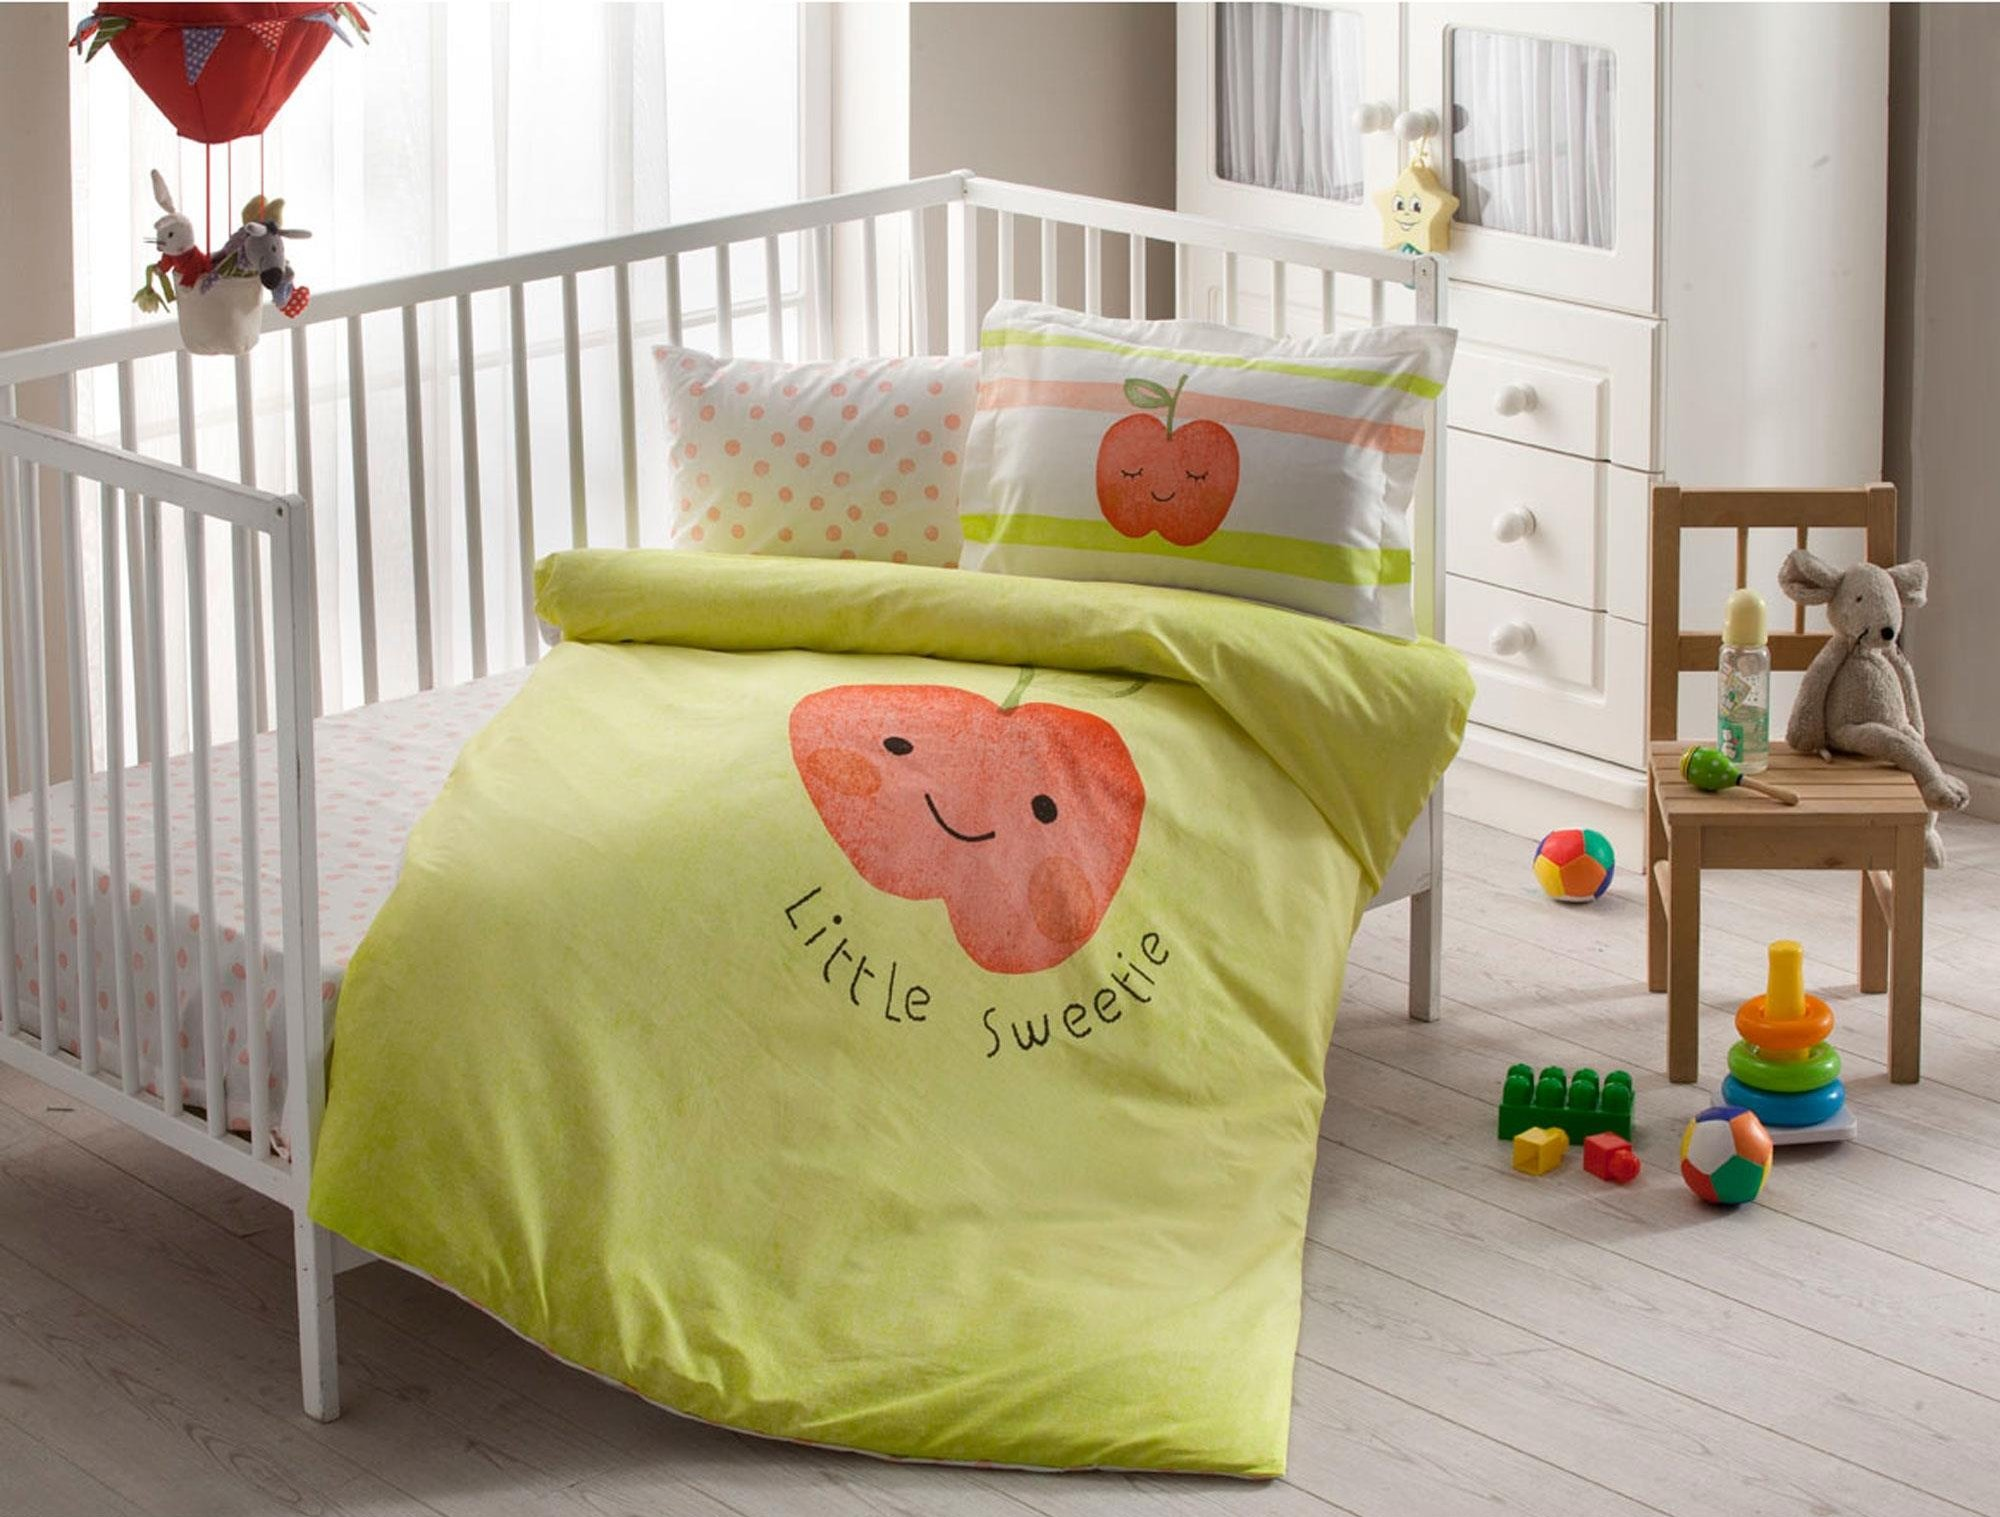 100% Organic Cotton Soft and Healthy Baby Crib Bed Duvet Cover Set 4 Pieces, Hallmark Baby Bedding Set